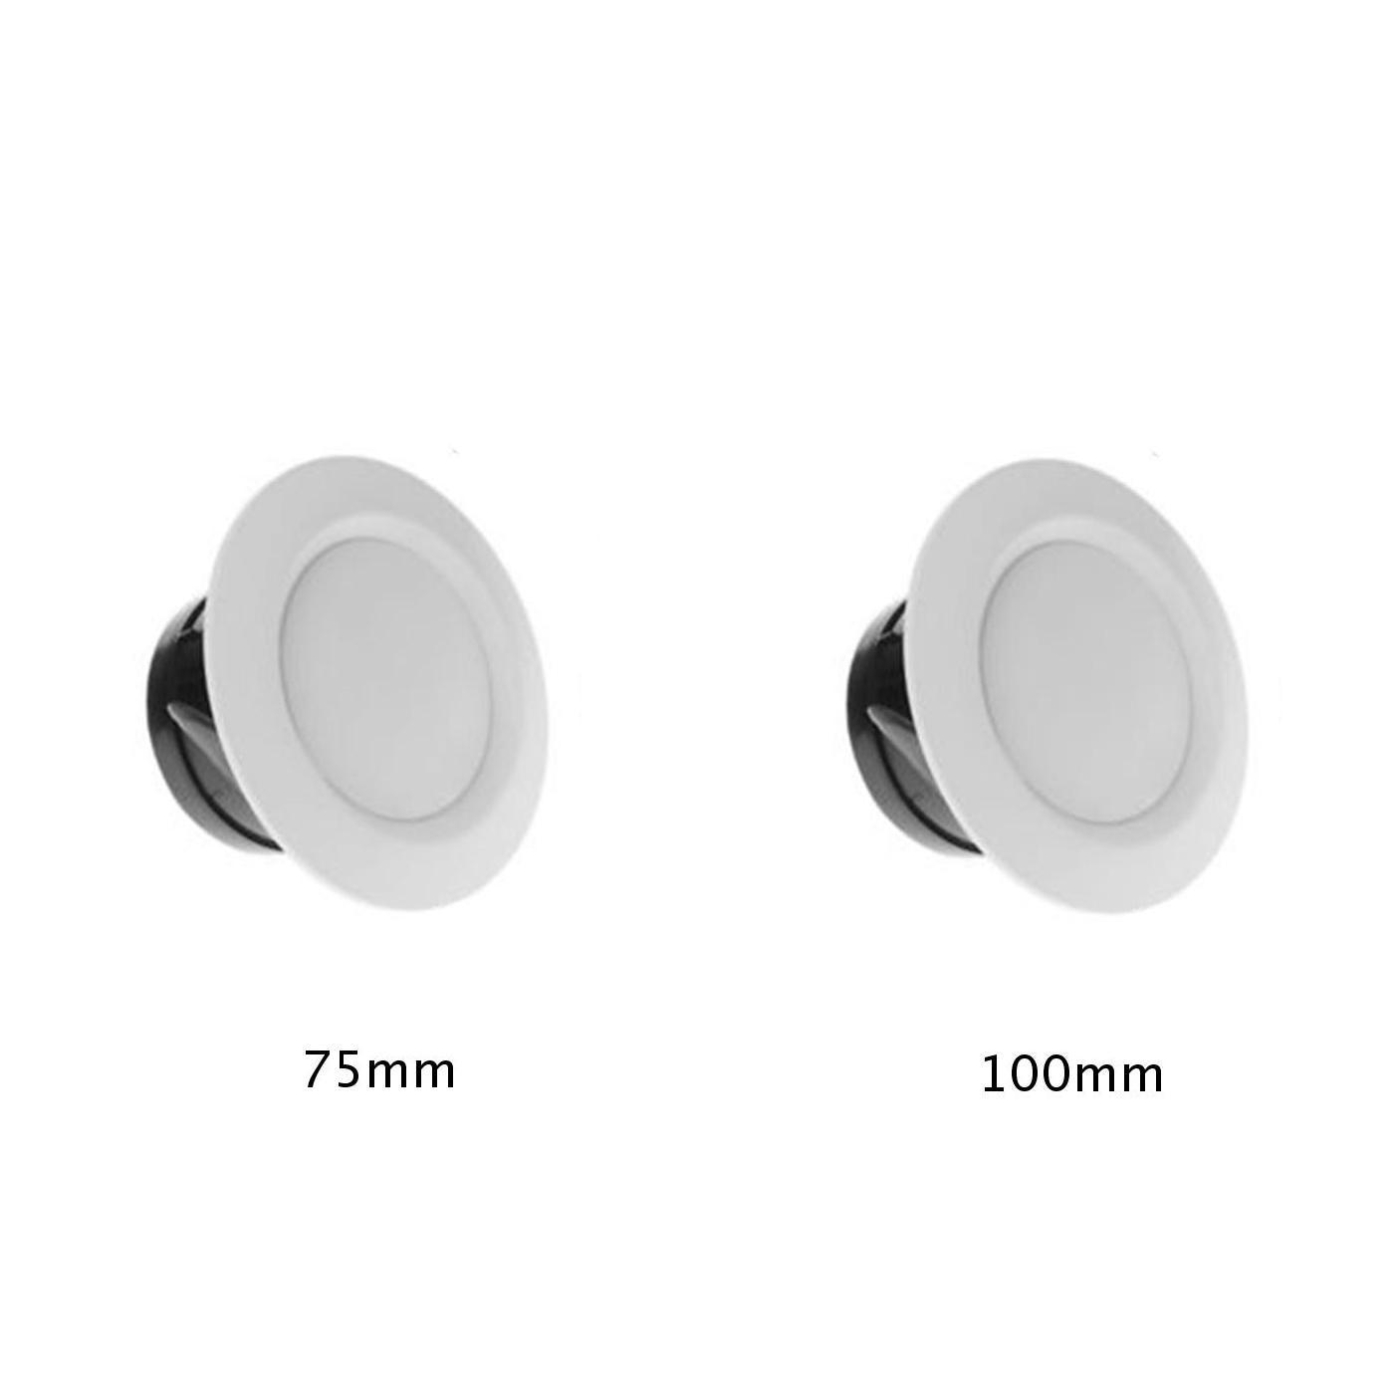 Adjustable Ceiling Air Extractor Valve Round Diffuser Duct Outlet Cover Home Fresh Air Vent Grille Exhaust Fan Hood 75mm/100mm